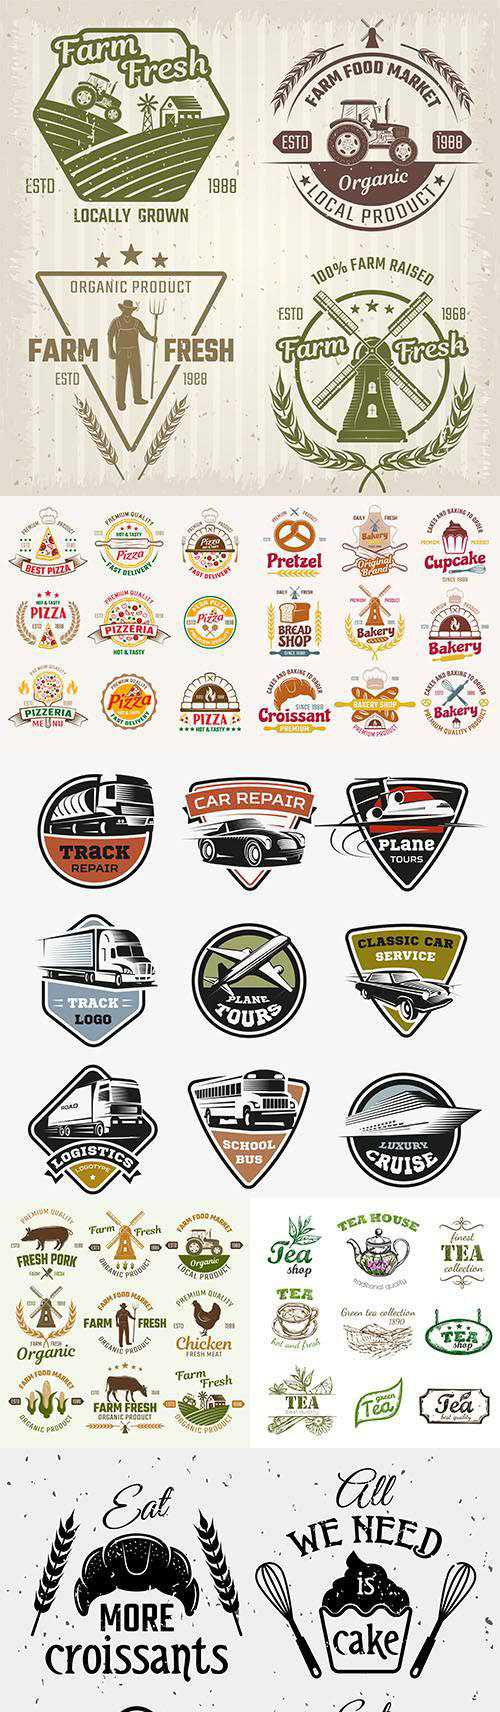 Vintage logo and emblem brand Name Company design 3